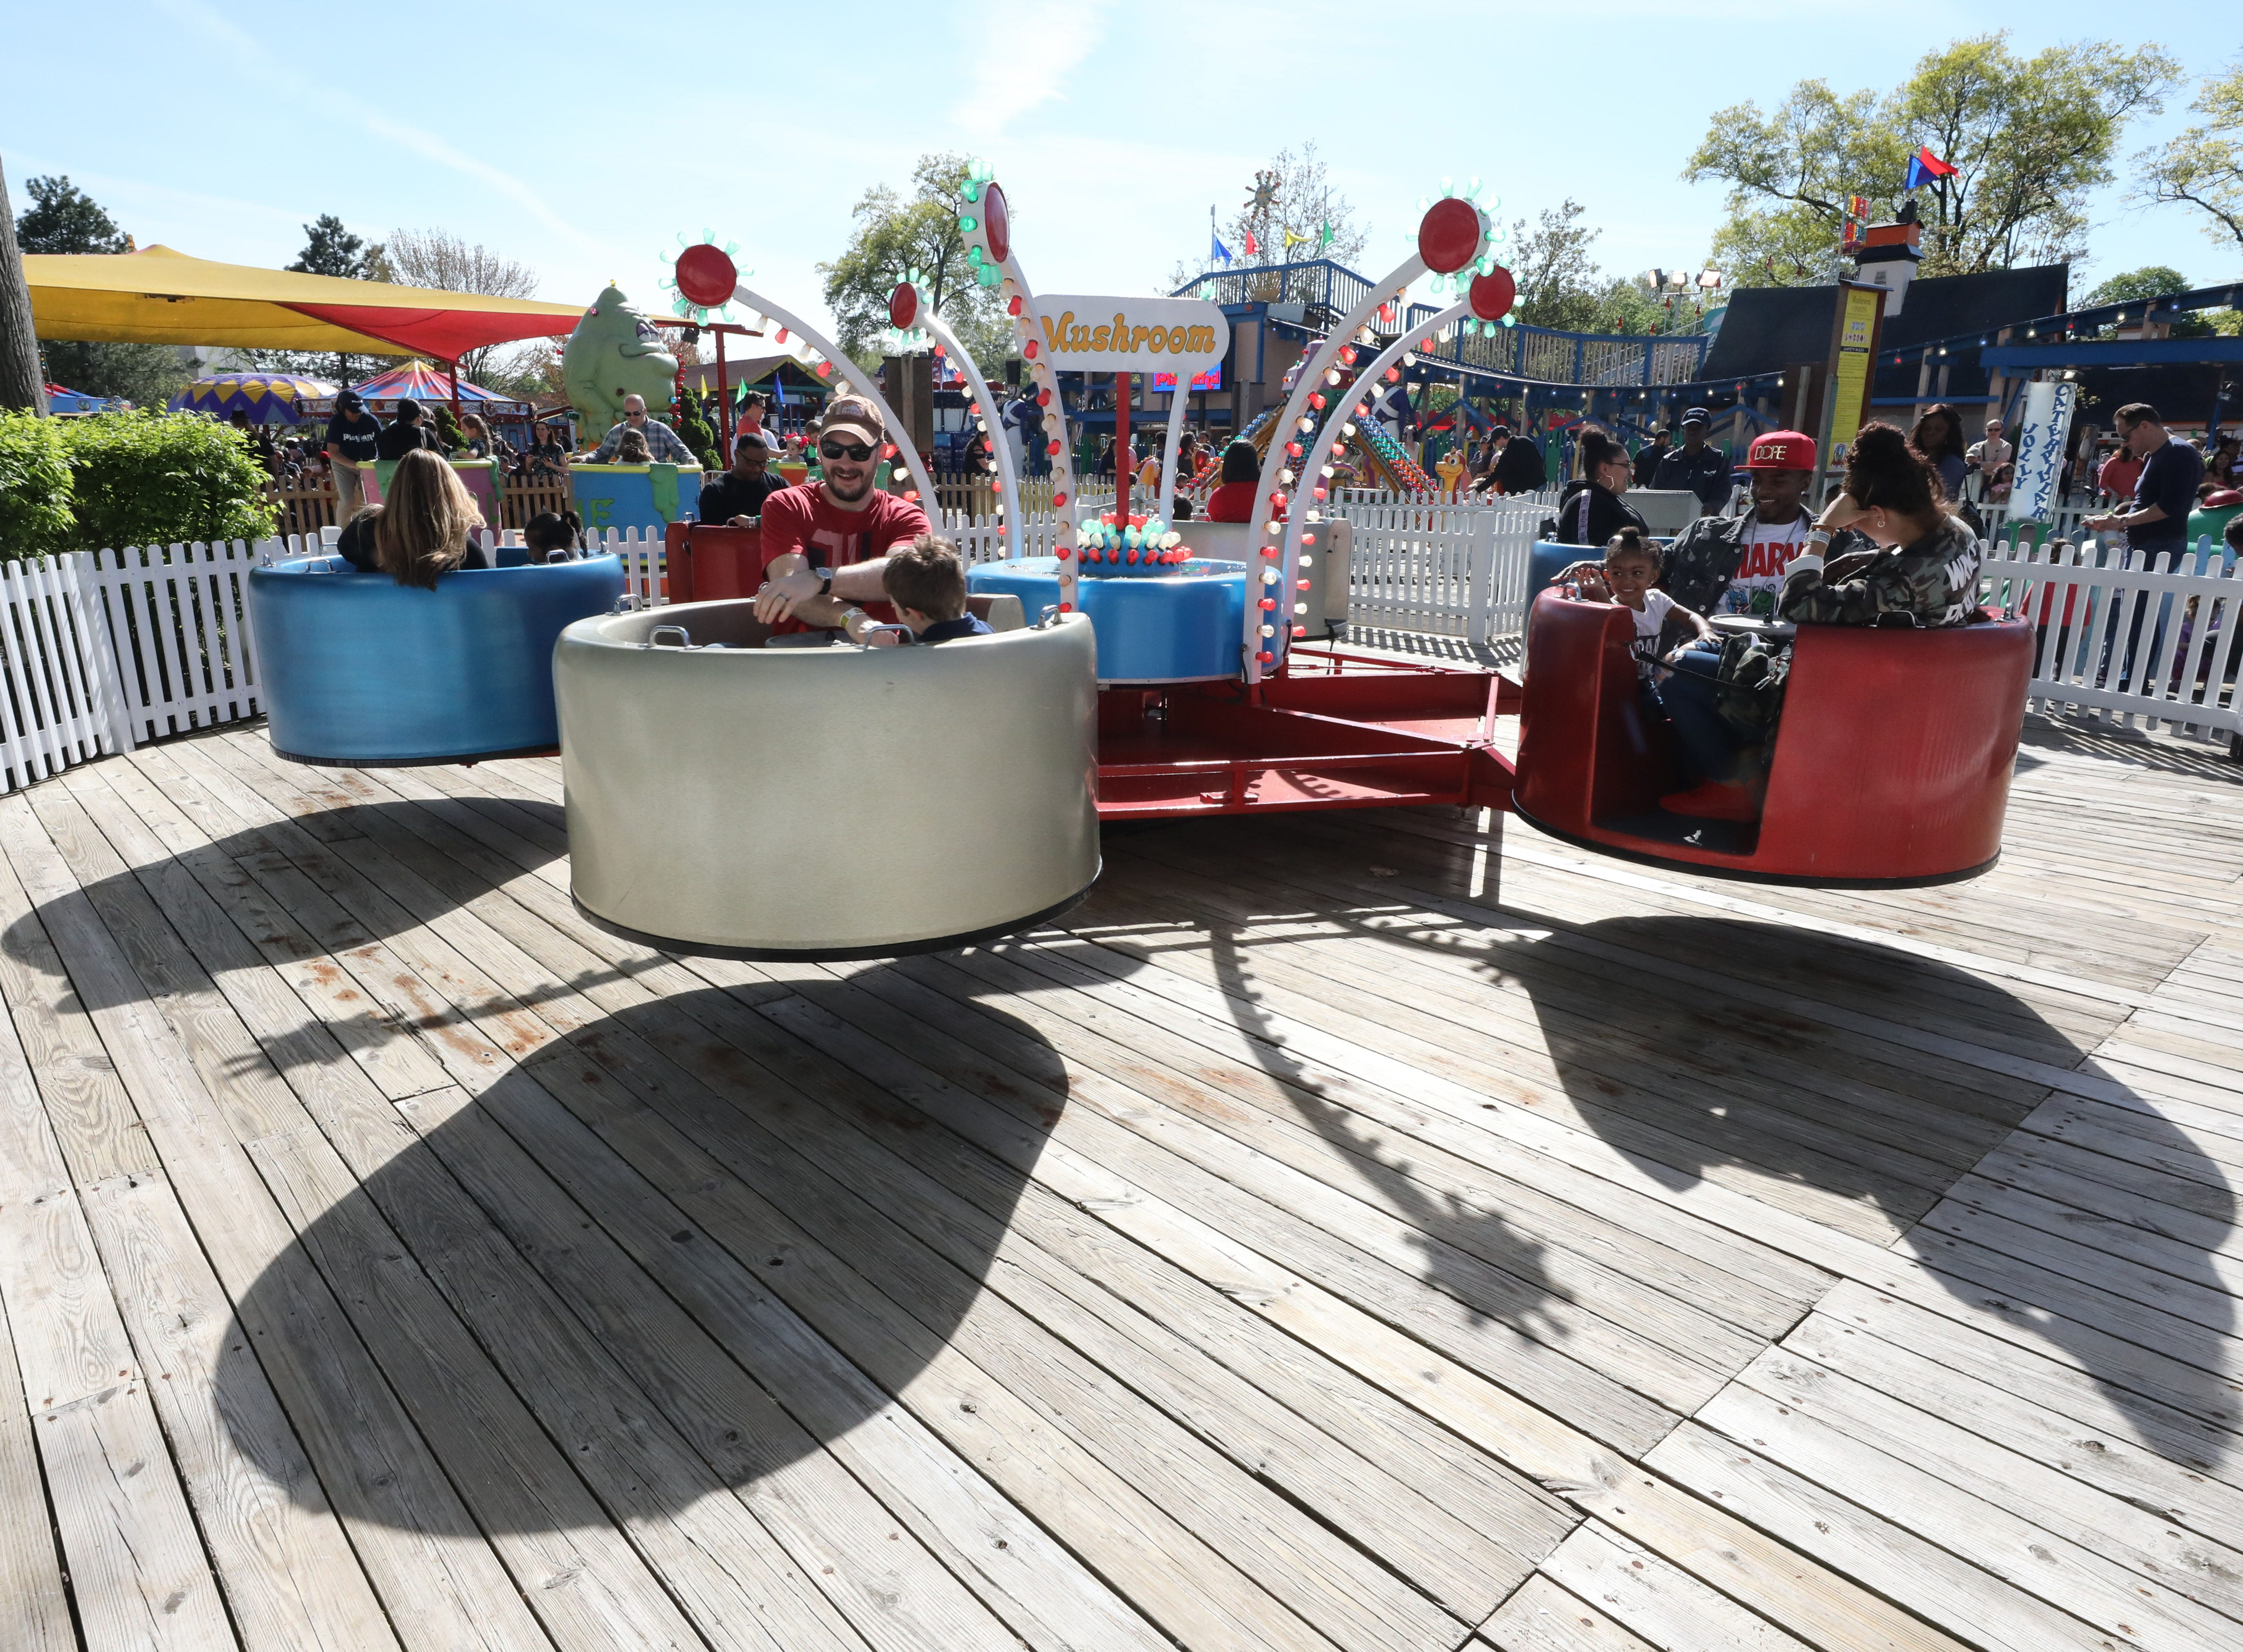 Children and adults enjoy the mushroom ride in kiddieland  during opening day at Playland in Rye, May 11, 2019.